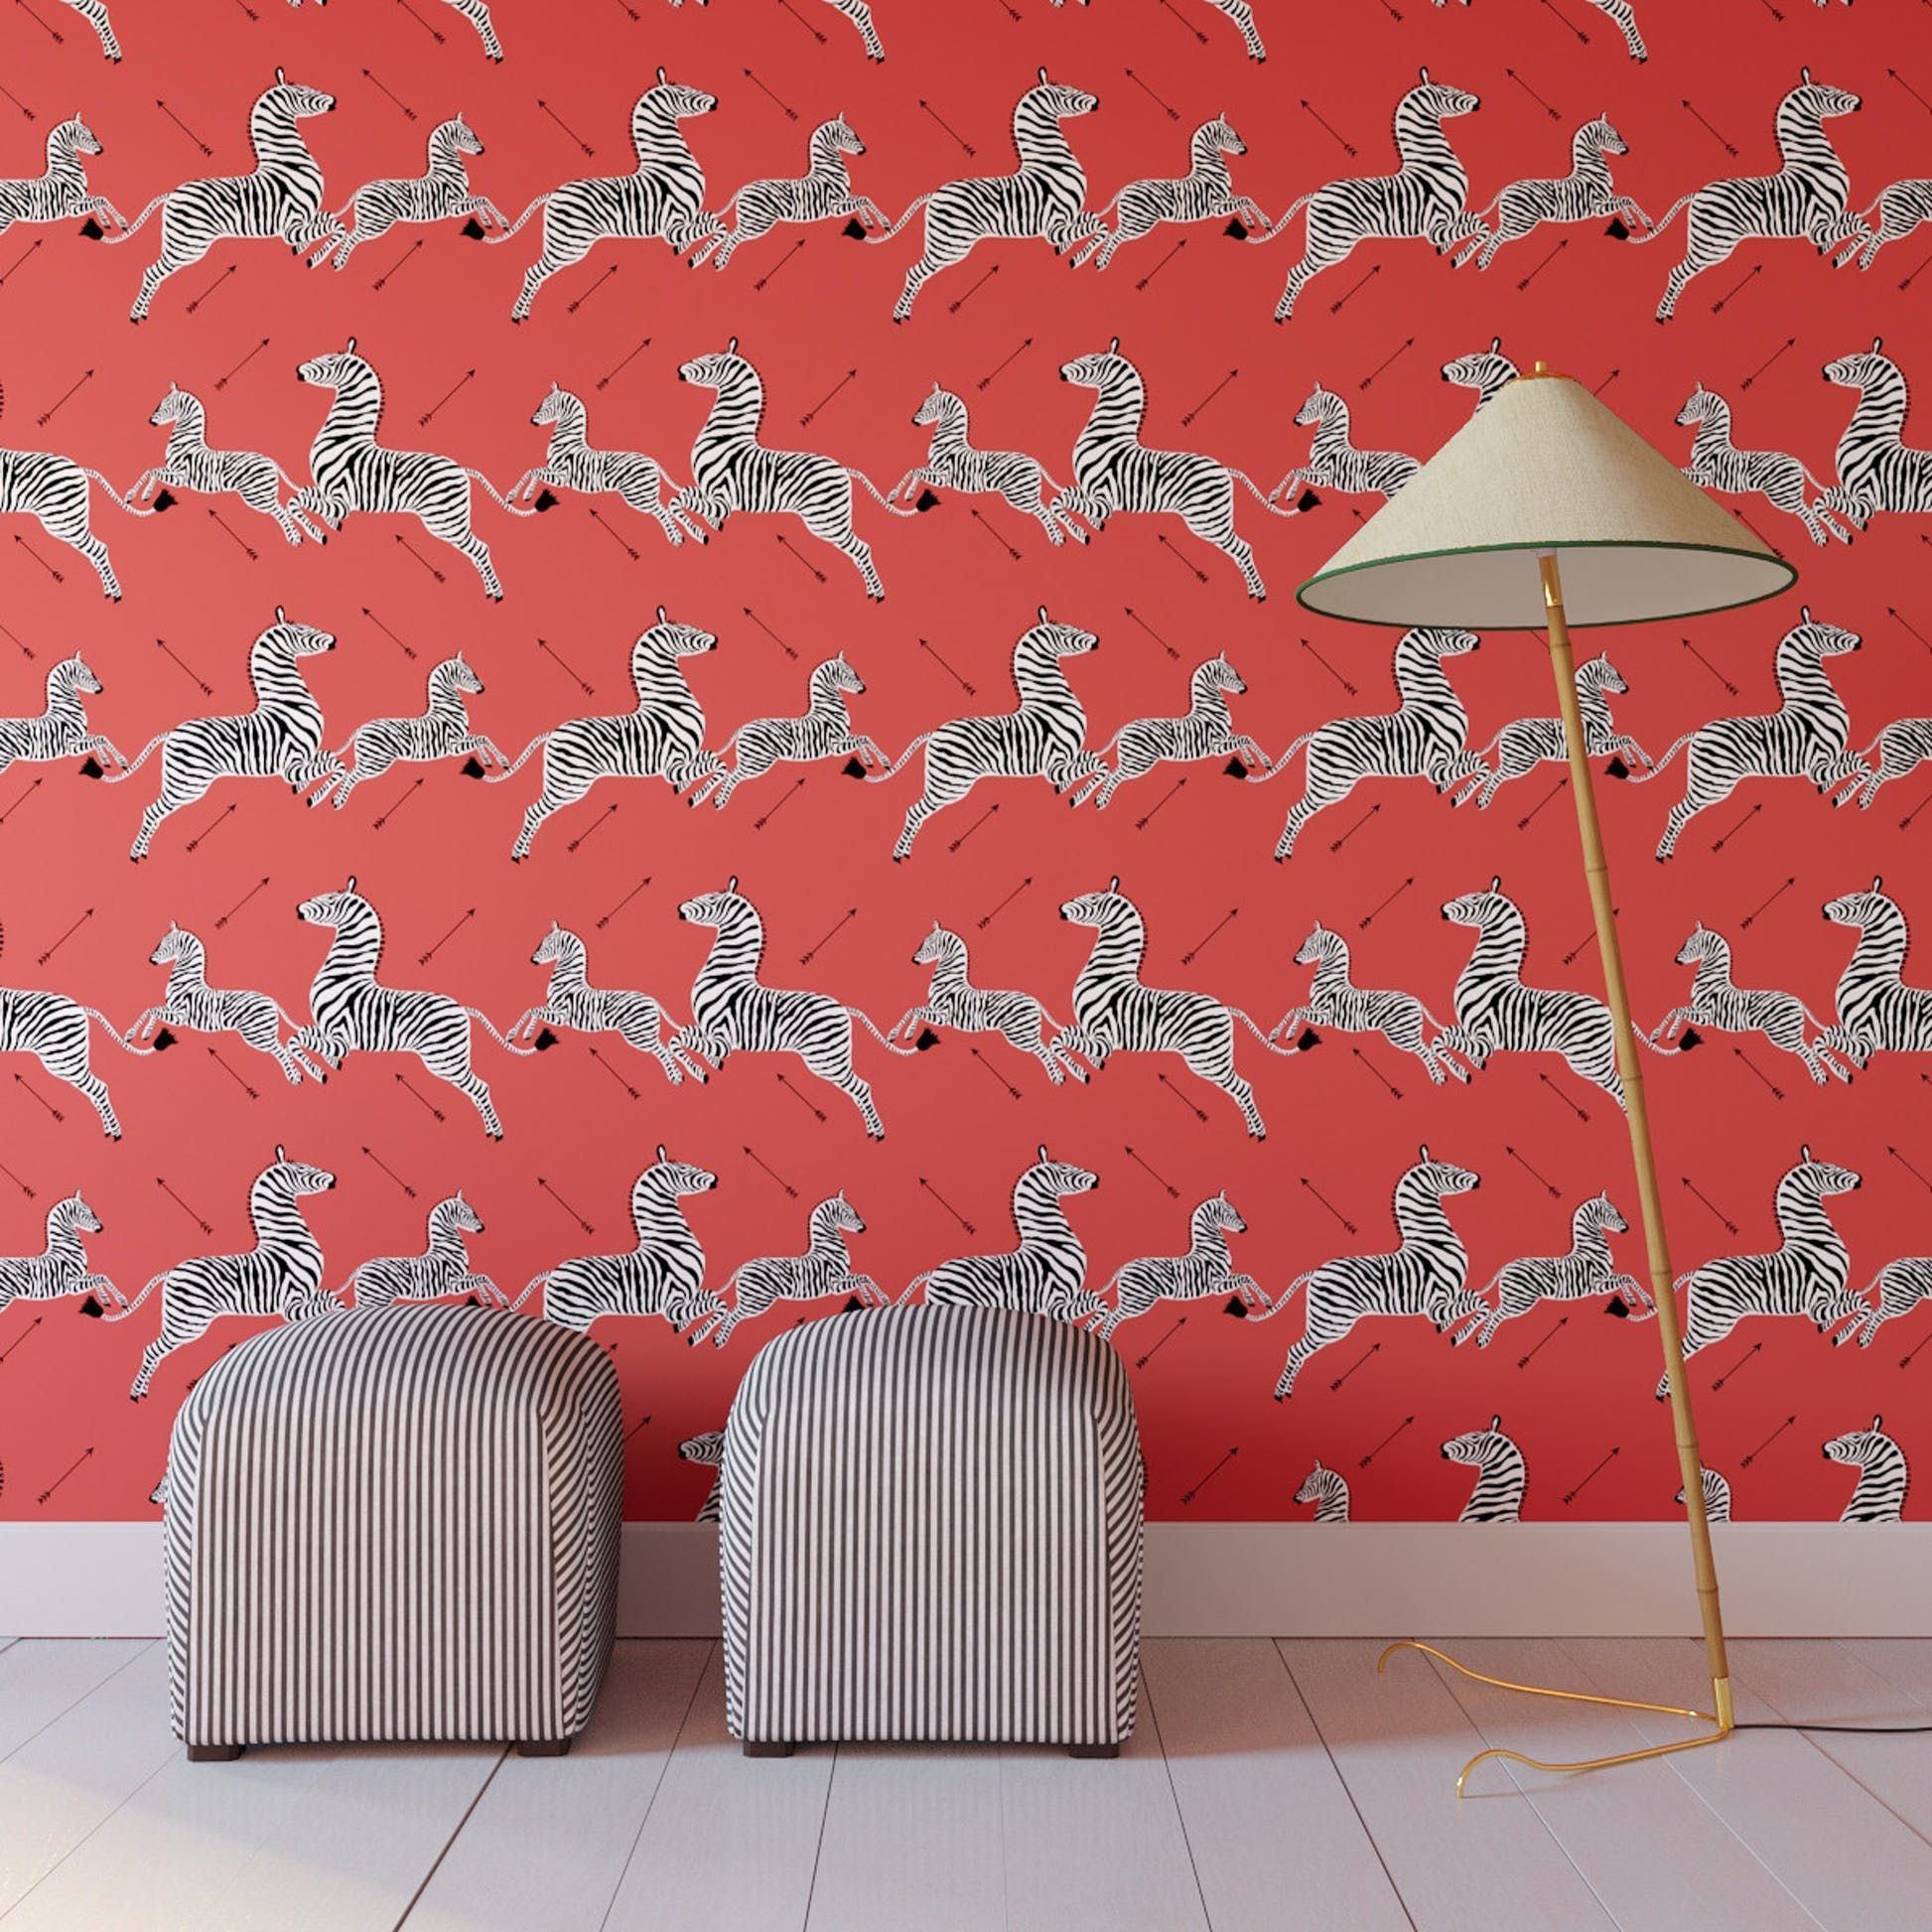 25 Best Removable Wallpapers Easy Peel And Stick Wallpaper Design Ideas